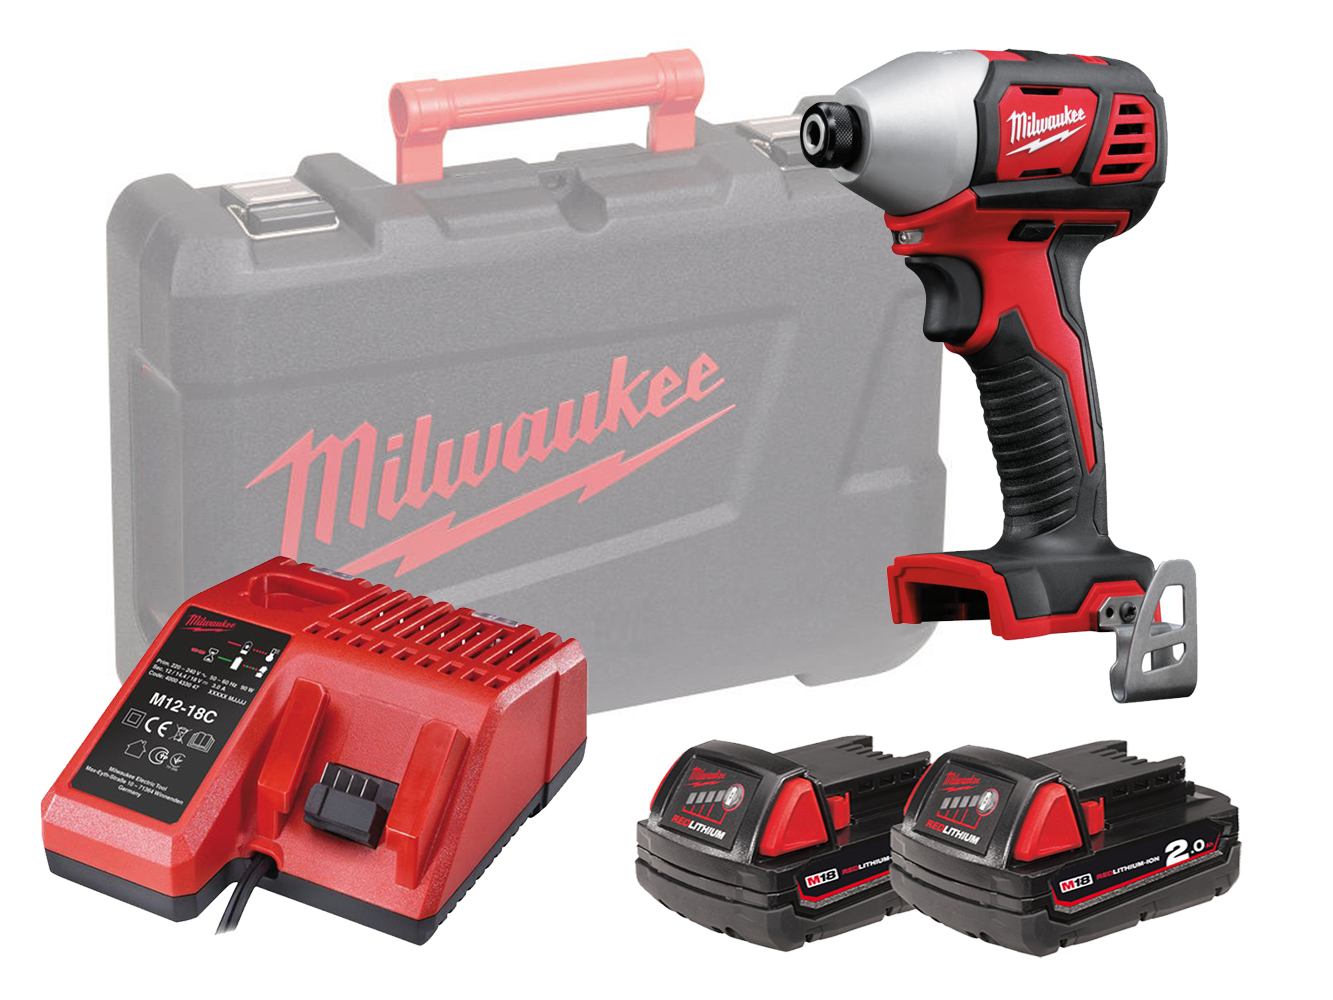 MILWAUKEE 18V BRUSHED IMPACT DRIVER - M18BID - 2.0AH PACK